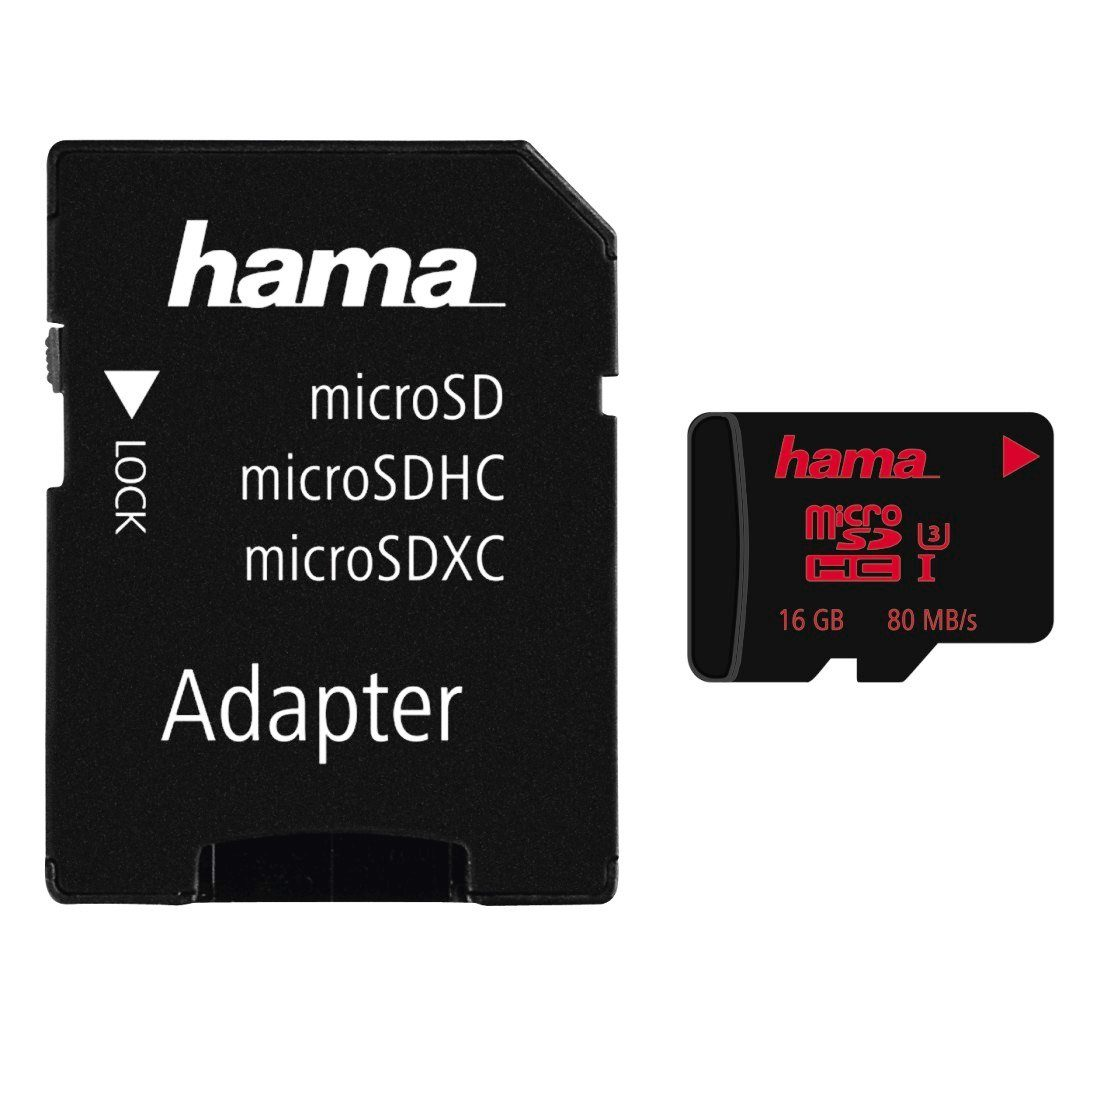 Hama microSDHC 16GB UHS Speed Class 3 UHS-I 80MB/s + Adapter/Foto